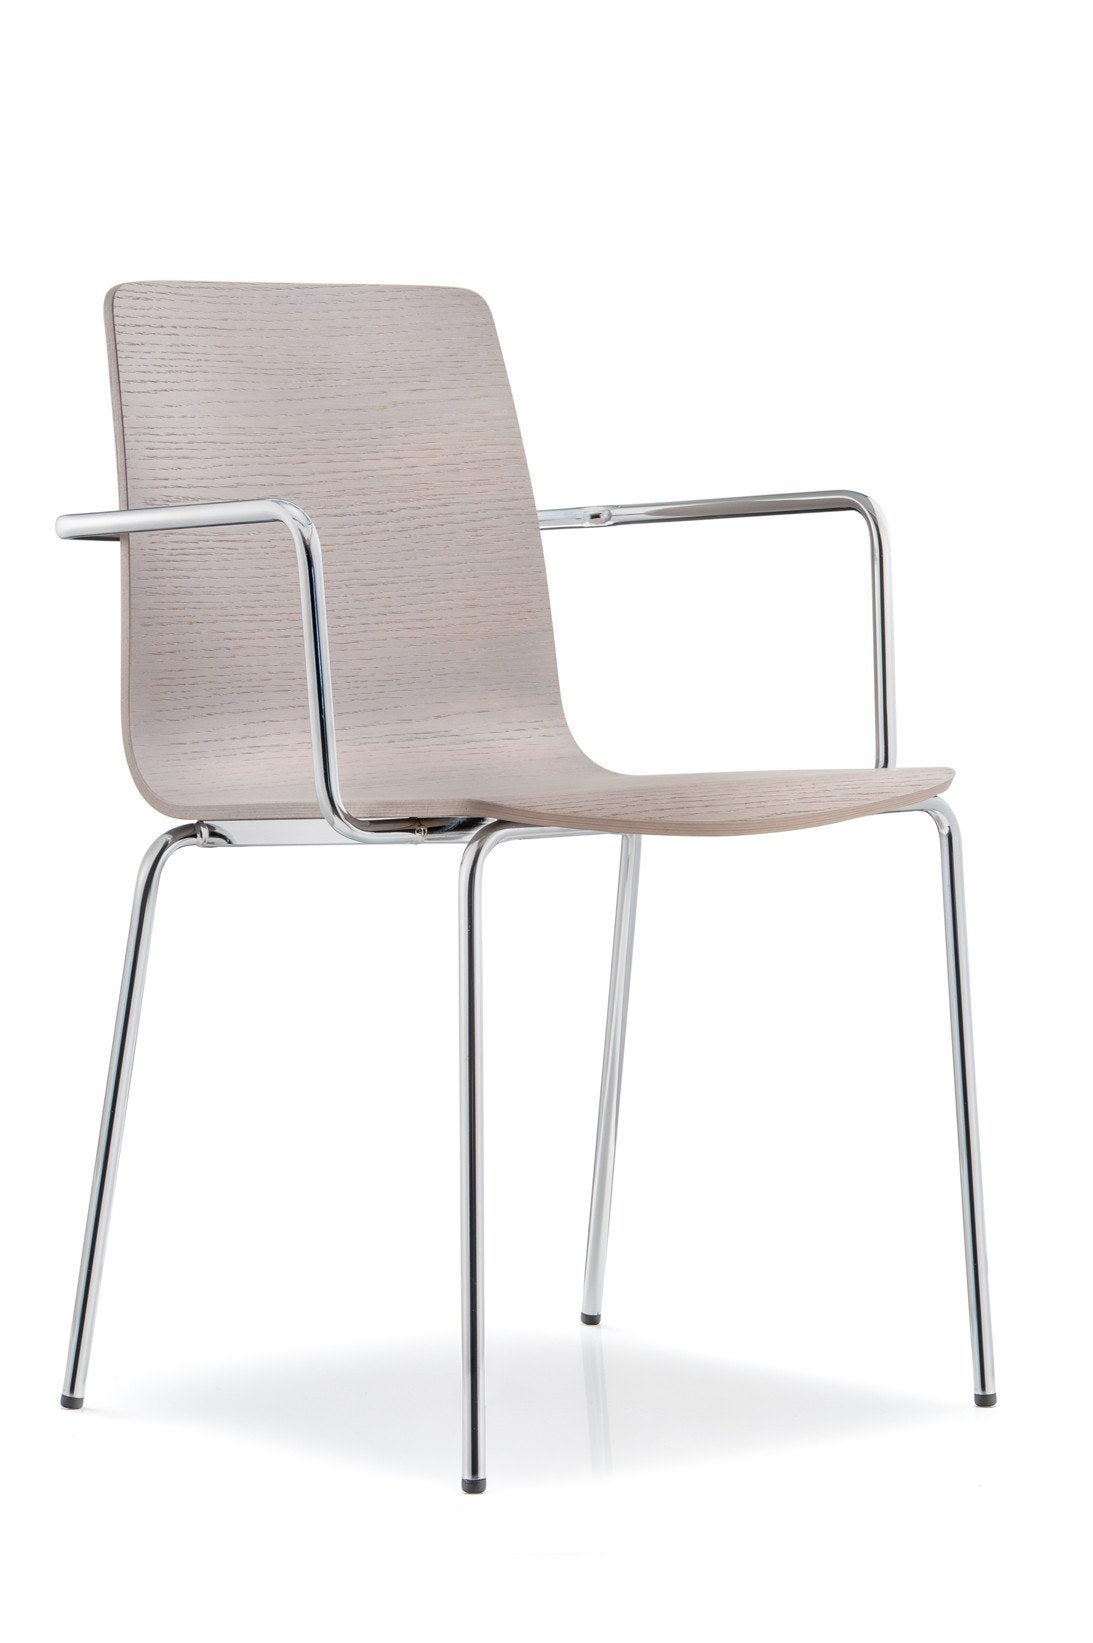 Inga 5614 Armchair-Pedrali-Contract Furniture Store